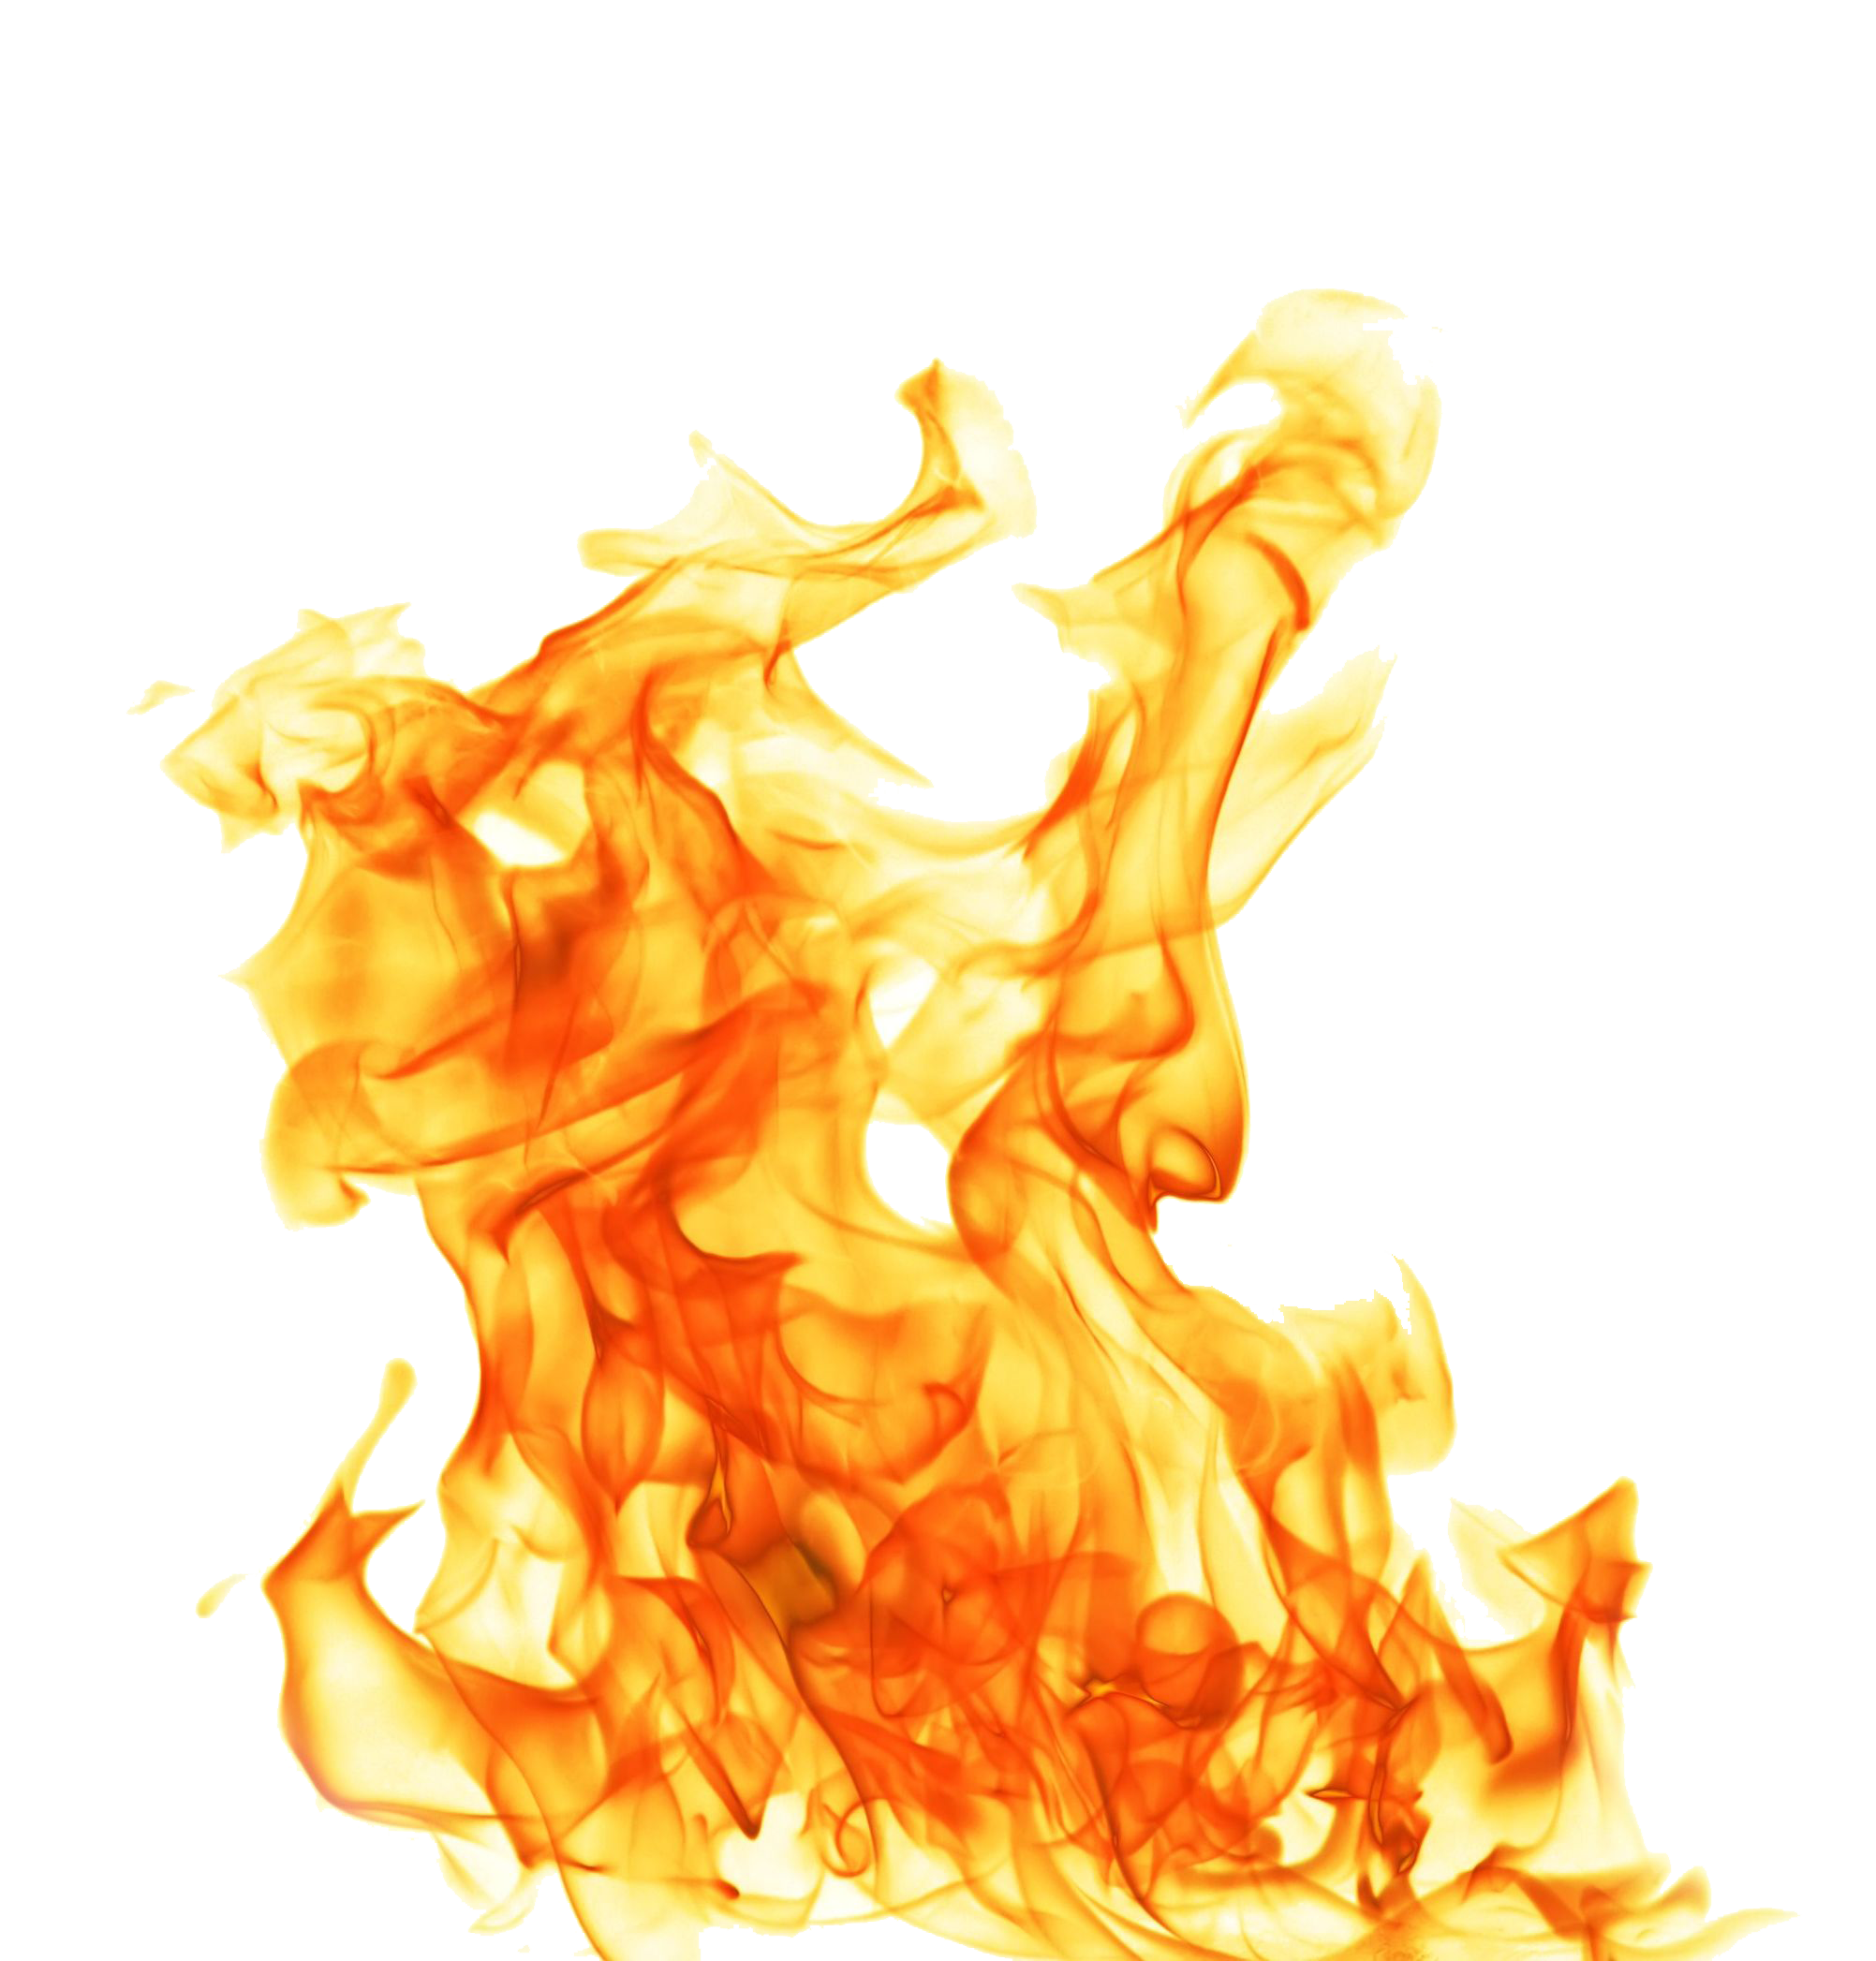 Fire png. Transparent images free